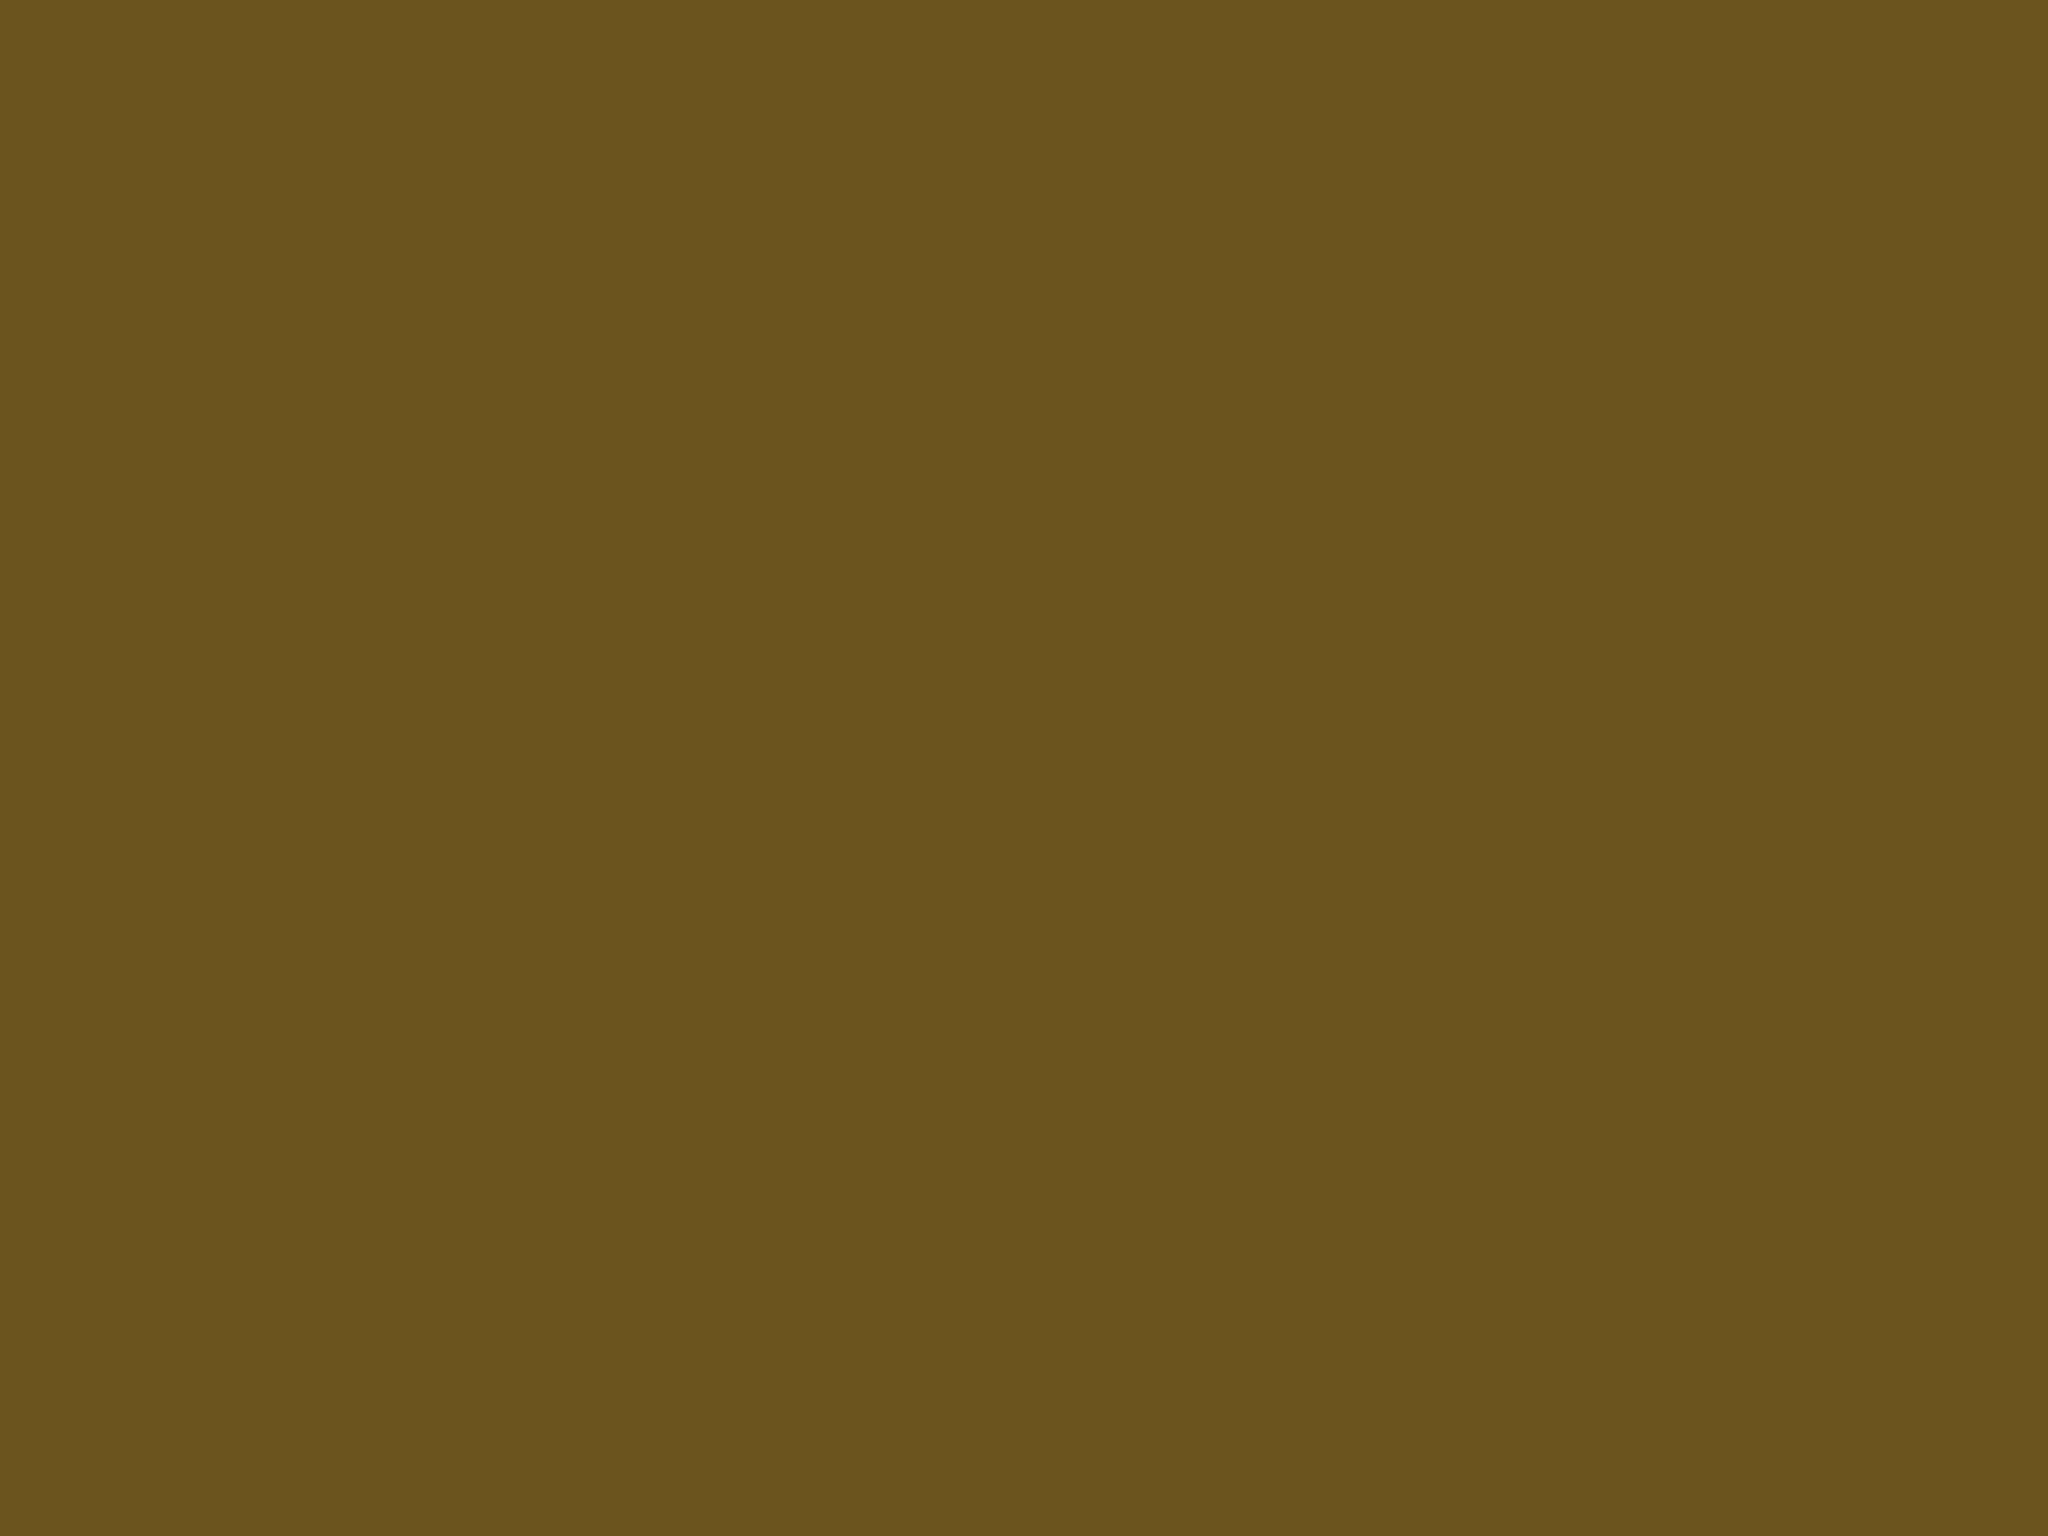 2048x1536 Field Drab Solid Color Background